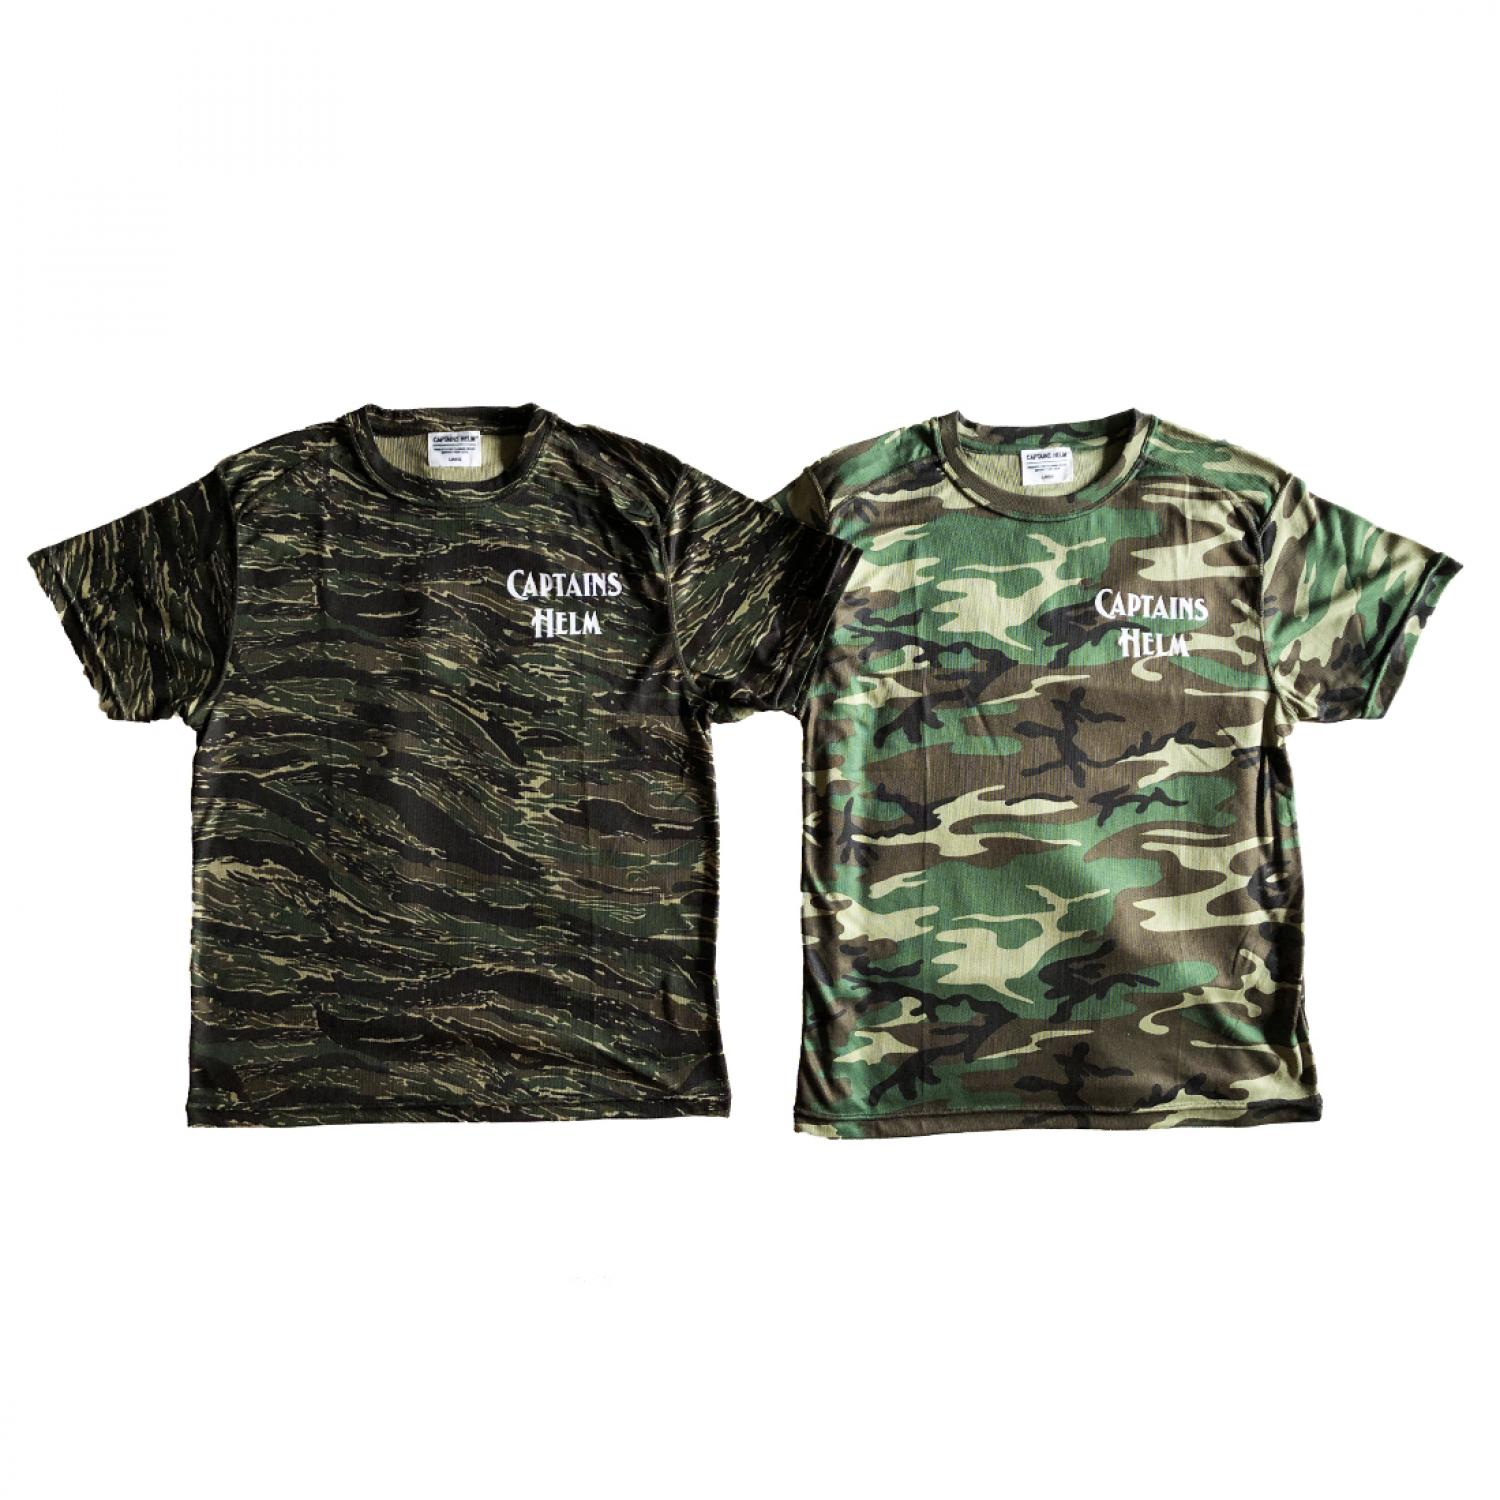 CAPTAINS HELM SUNGUARD RASH CAMO TEE